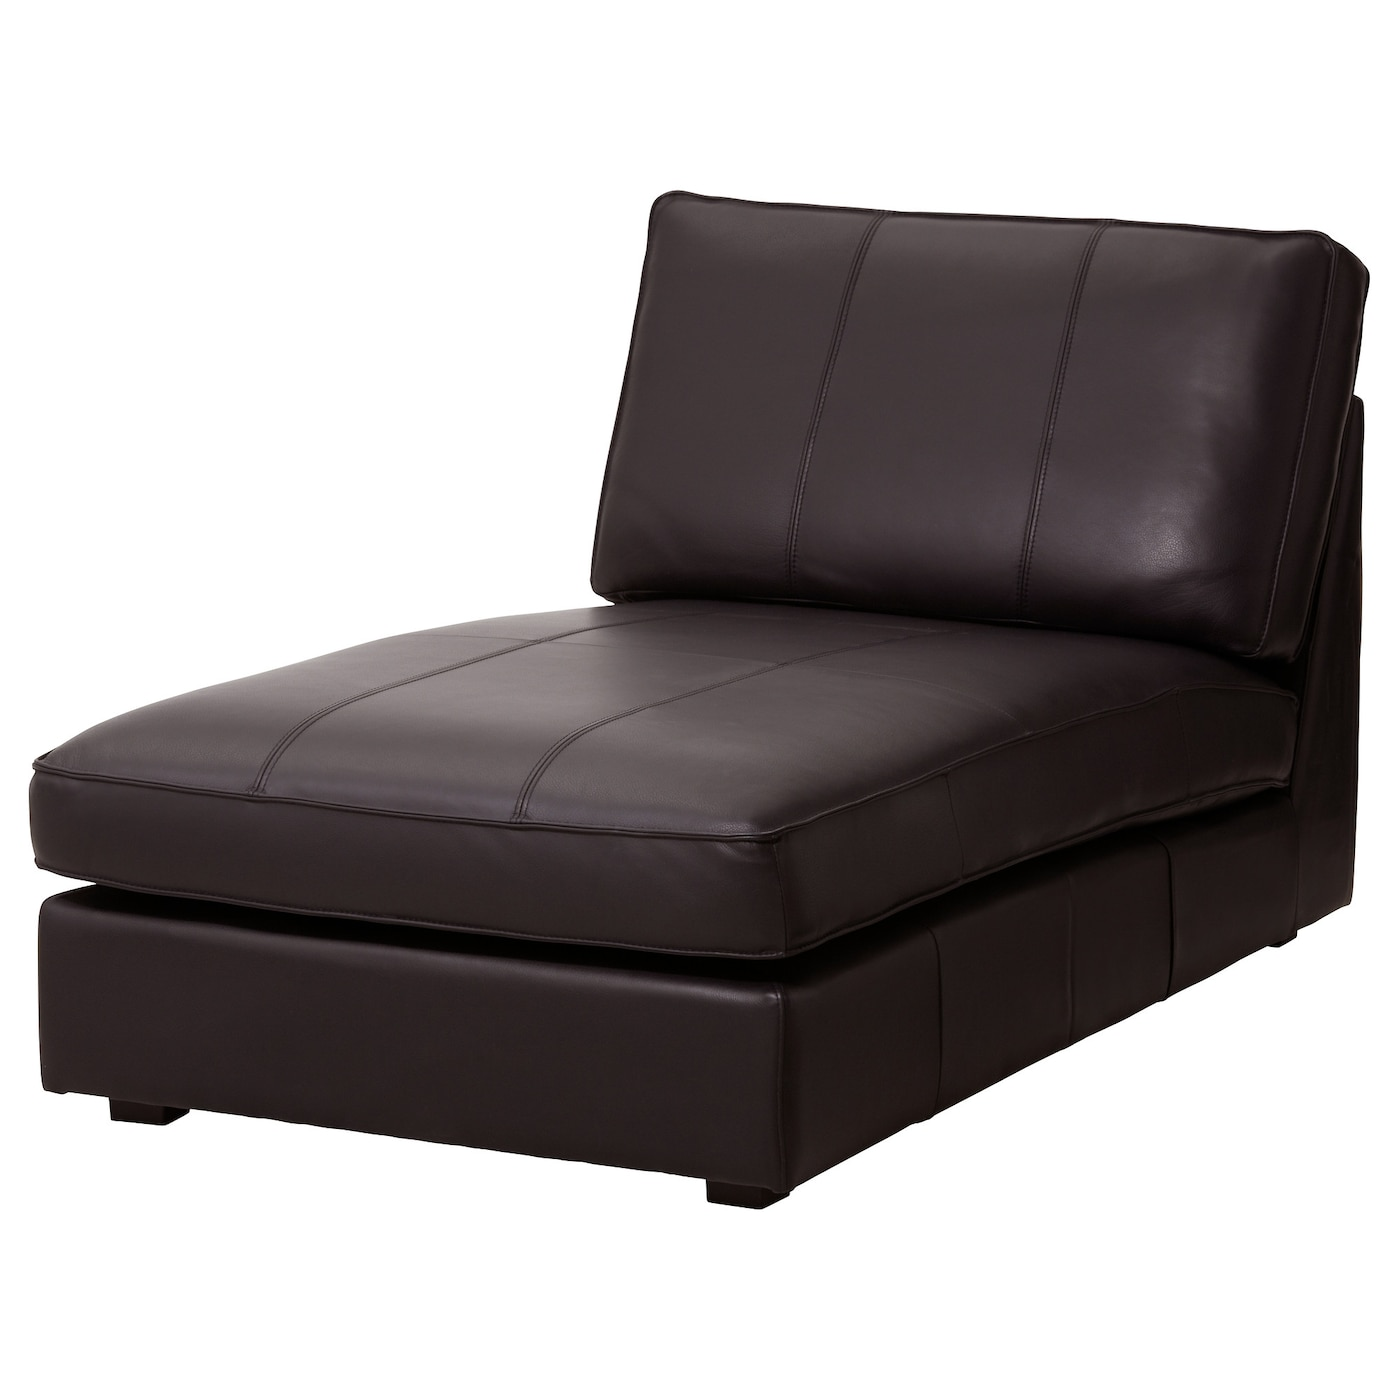 IKEA KIVIK Chaise Longue The Chaise Longue Can Either Be Used Freestanding  Or Added Onto The